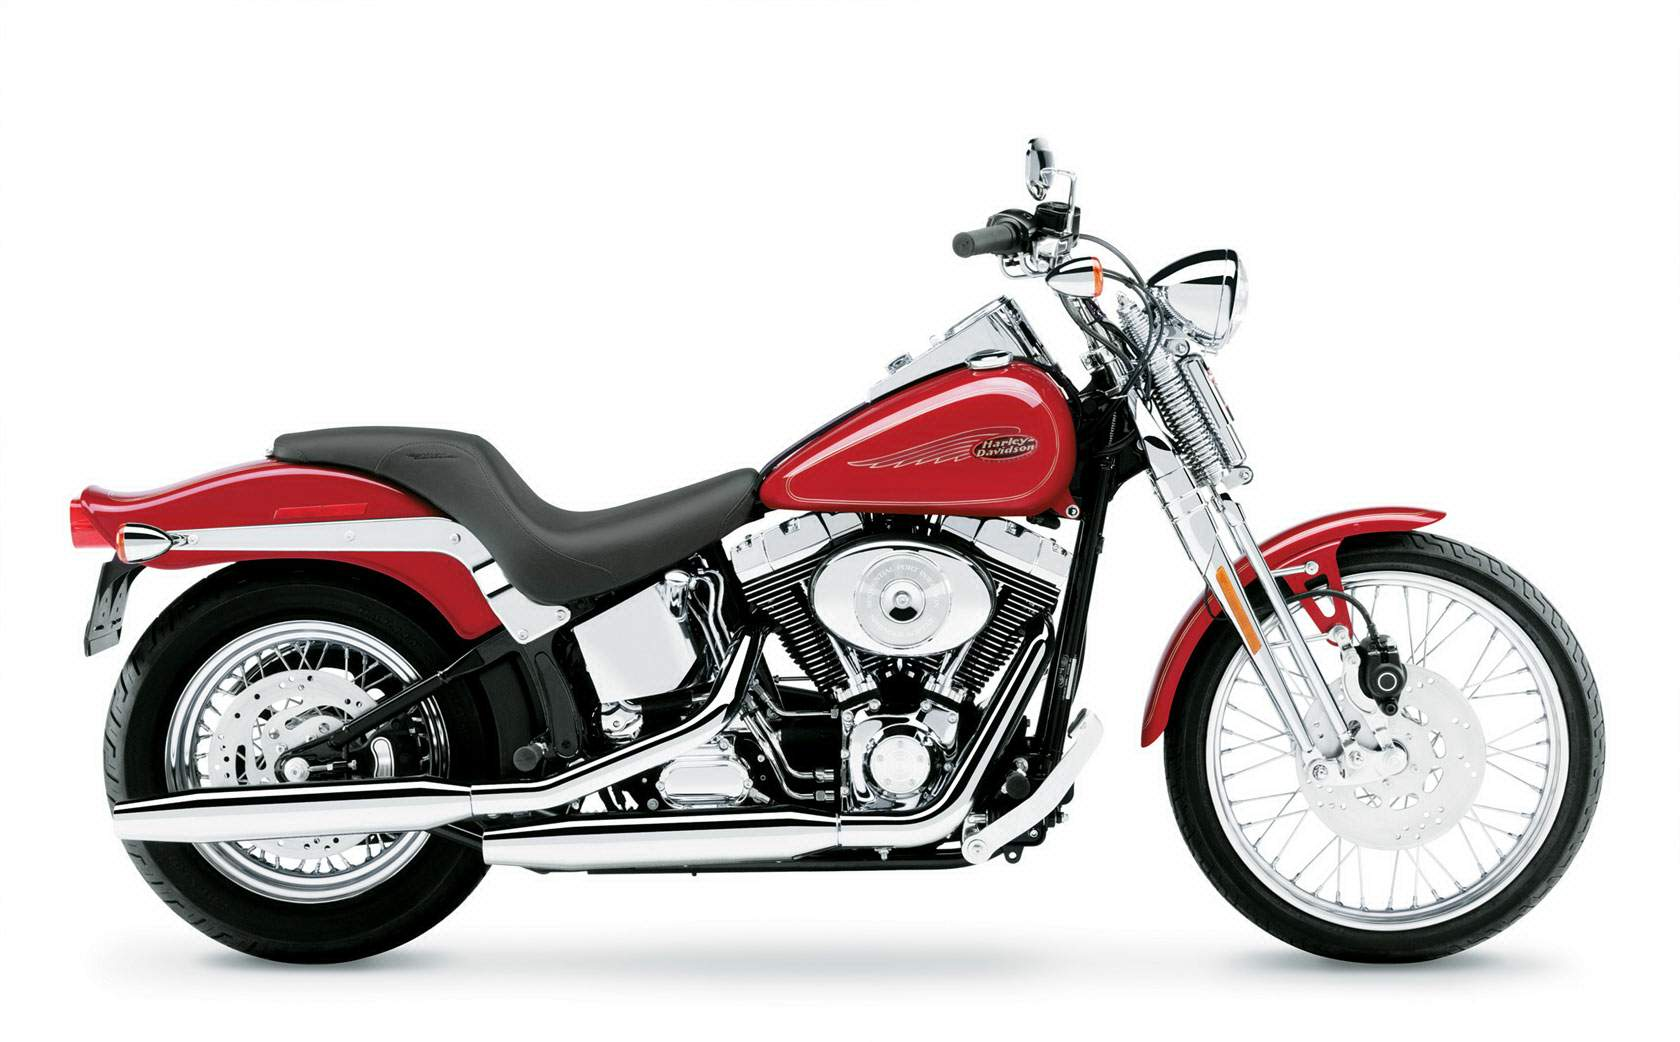 FXSTS/I Softail Springer For Sale Specifications, Price and Images